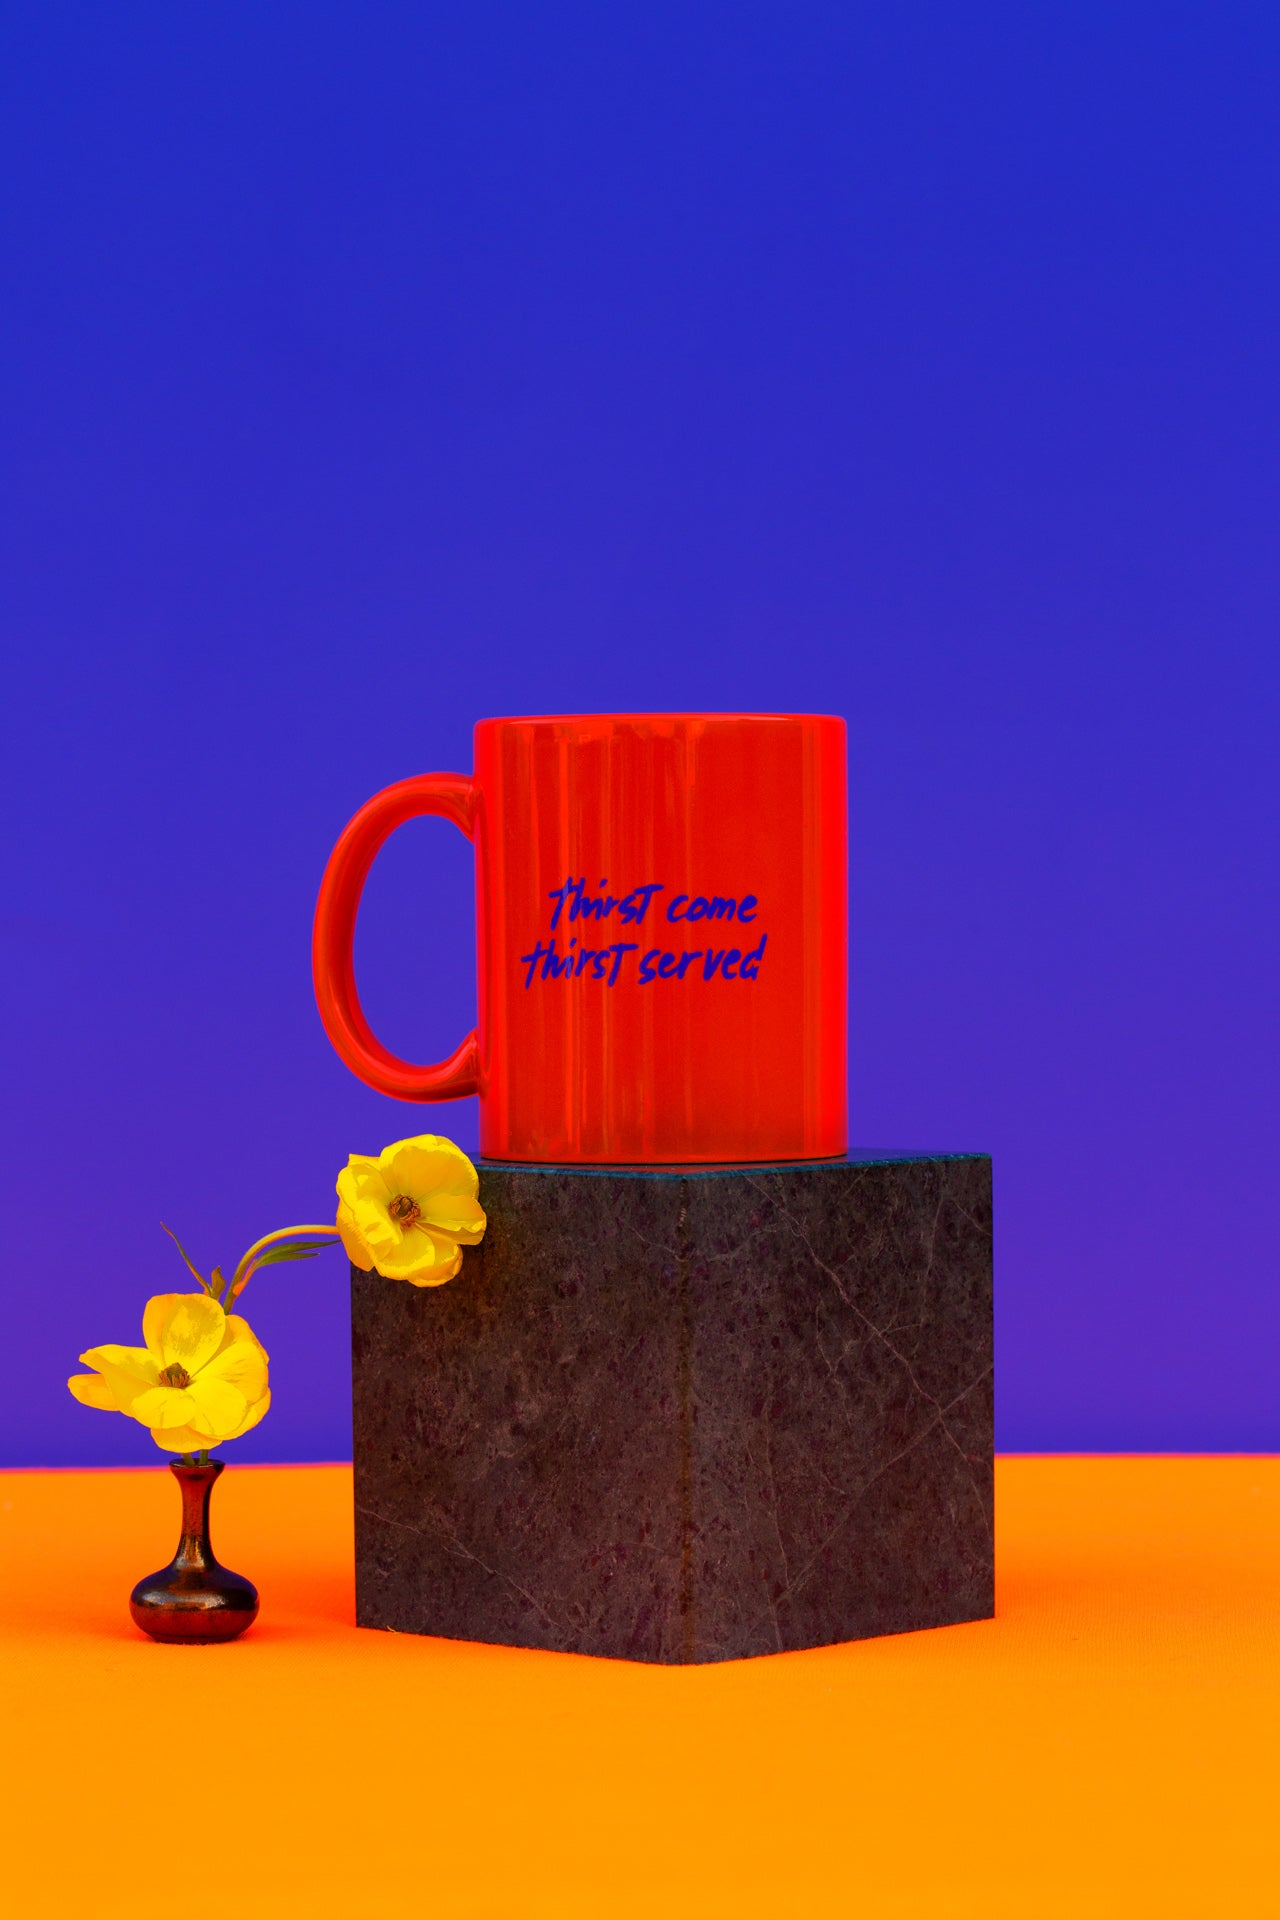 orange colored mug with thirst come, thirst serve